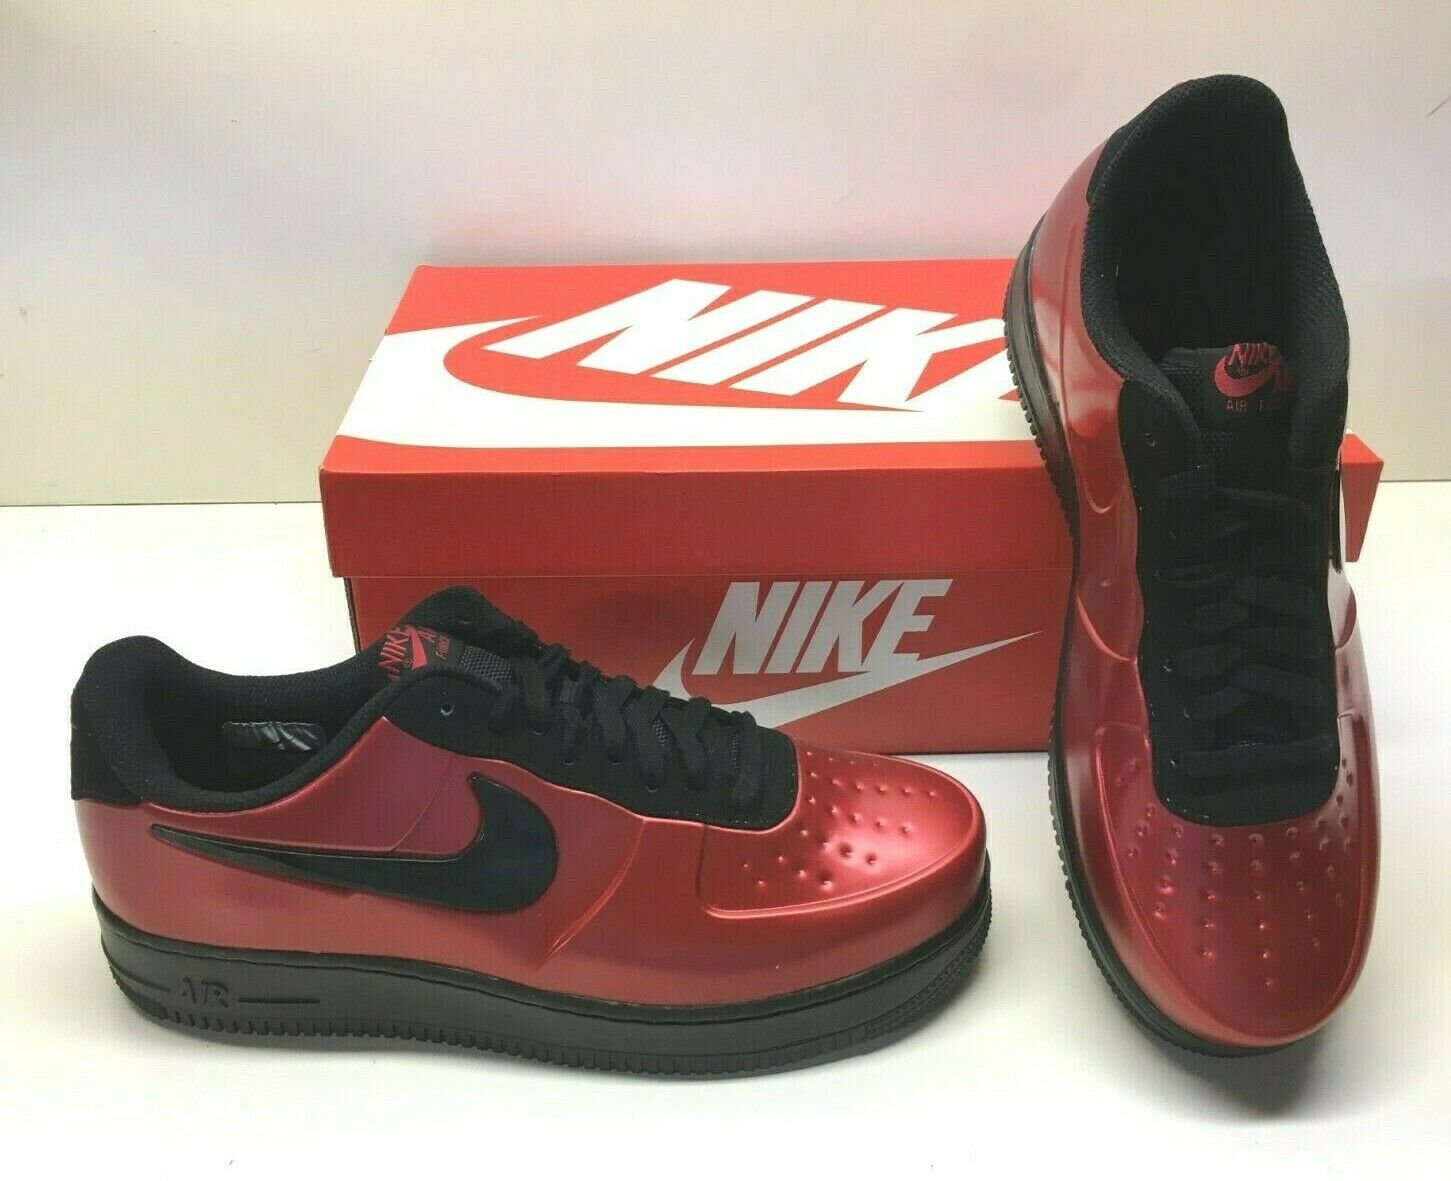 Nike Air Force 1 Foamposite Pro Cup Shoes Mens Size 10.5 Aj3664 601